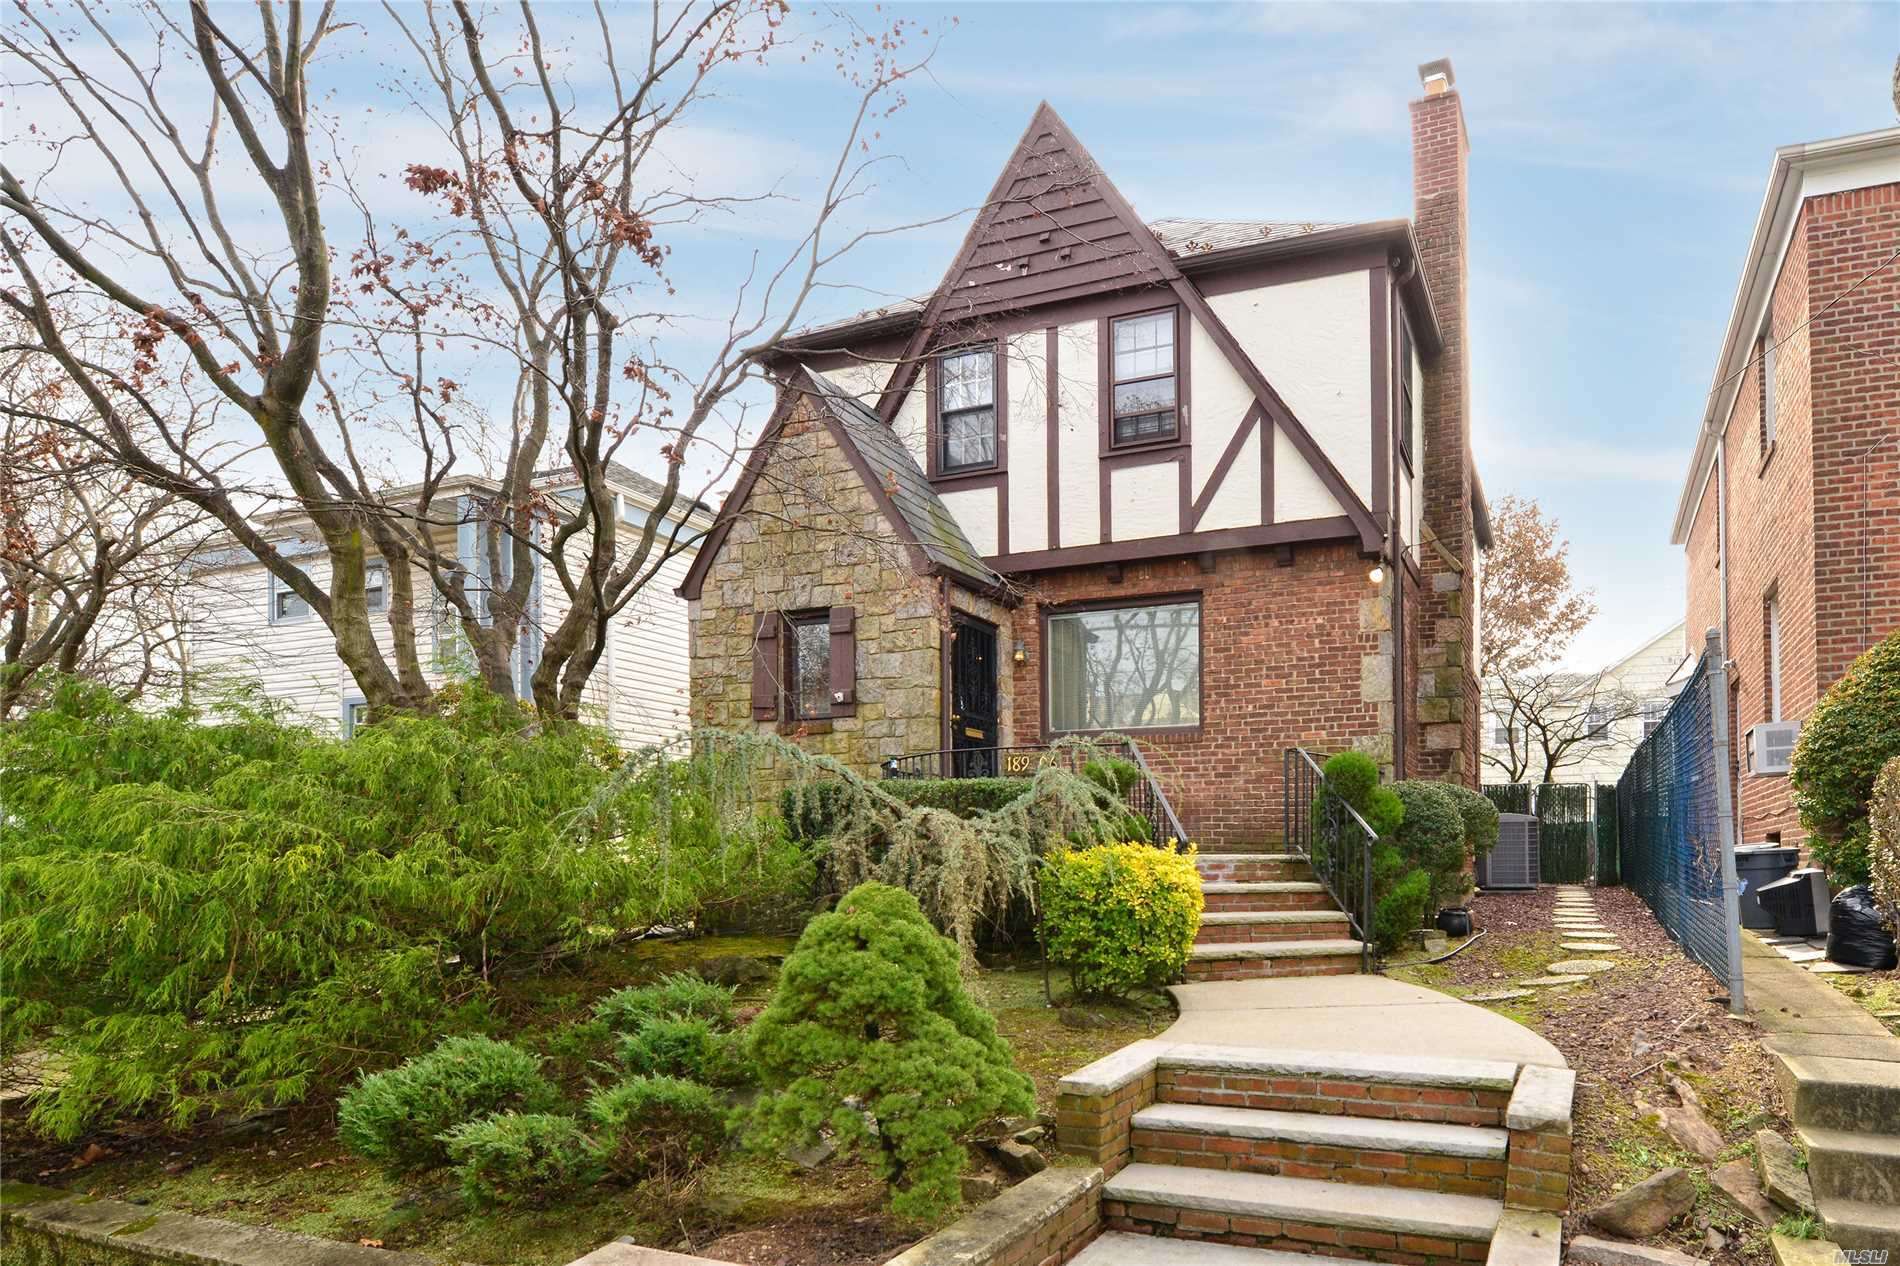 Just Listed... But Not For Long! Beautiful Detached Tudor Style Home Conveniently Located In Prime North Flushing Neighborhood. Super Convenient To Shopping & Transportation. Some Upgrades Include- Newer Kitchen & Bathroom,  H.W. Heater, Upgraded Electric, Sprinkler System, Alarm System & Waterproof Basement. School District 25 - P.S. 32,  I.S. 25,  Francis Lewis H.S.